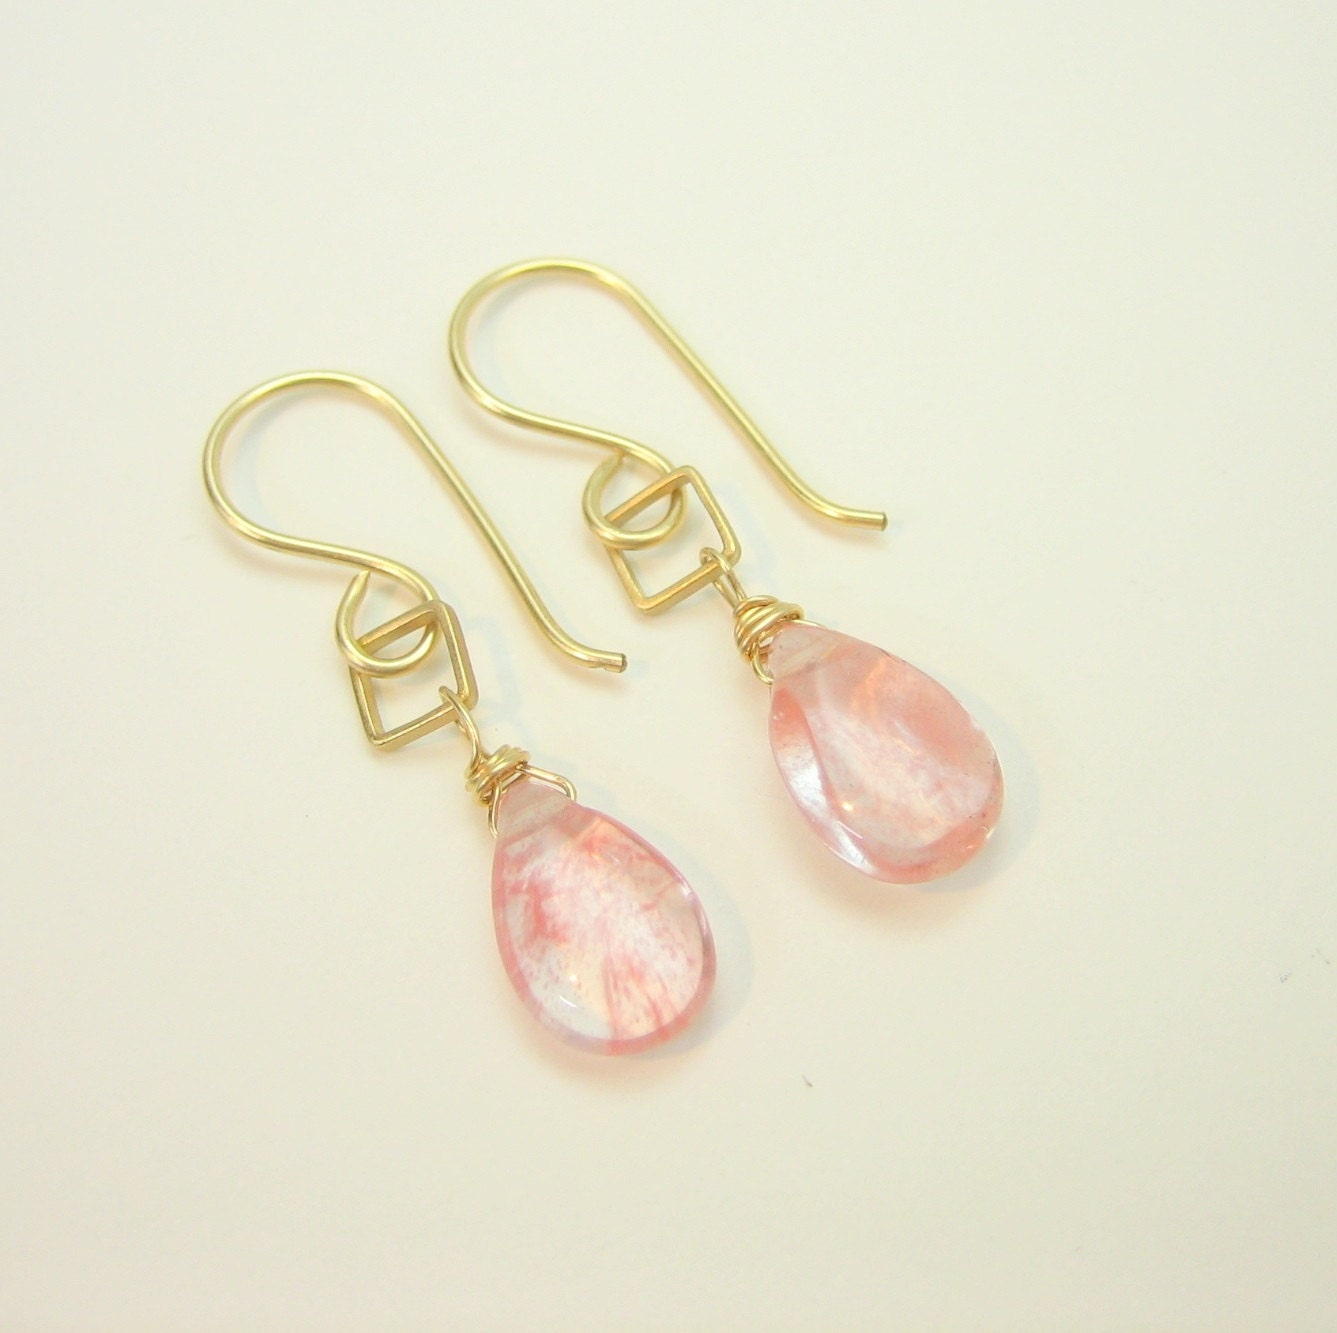 Hammered gold and pink quartz drop earrings, pink gemstone earrings, strawberry quartz, misty metal, gift for her, bridesmaid earrings